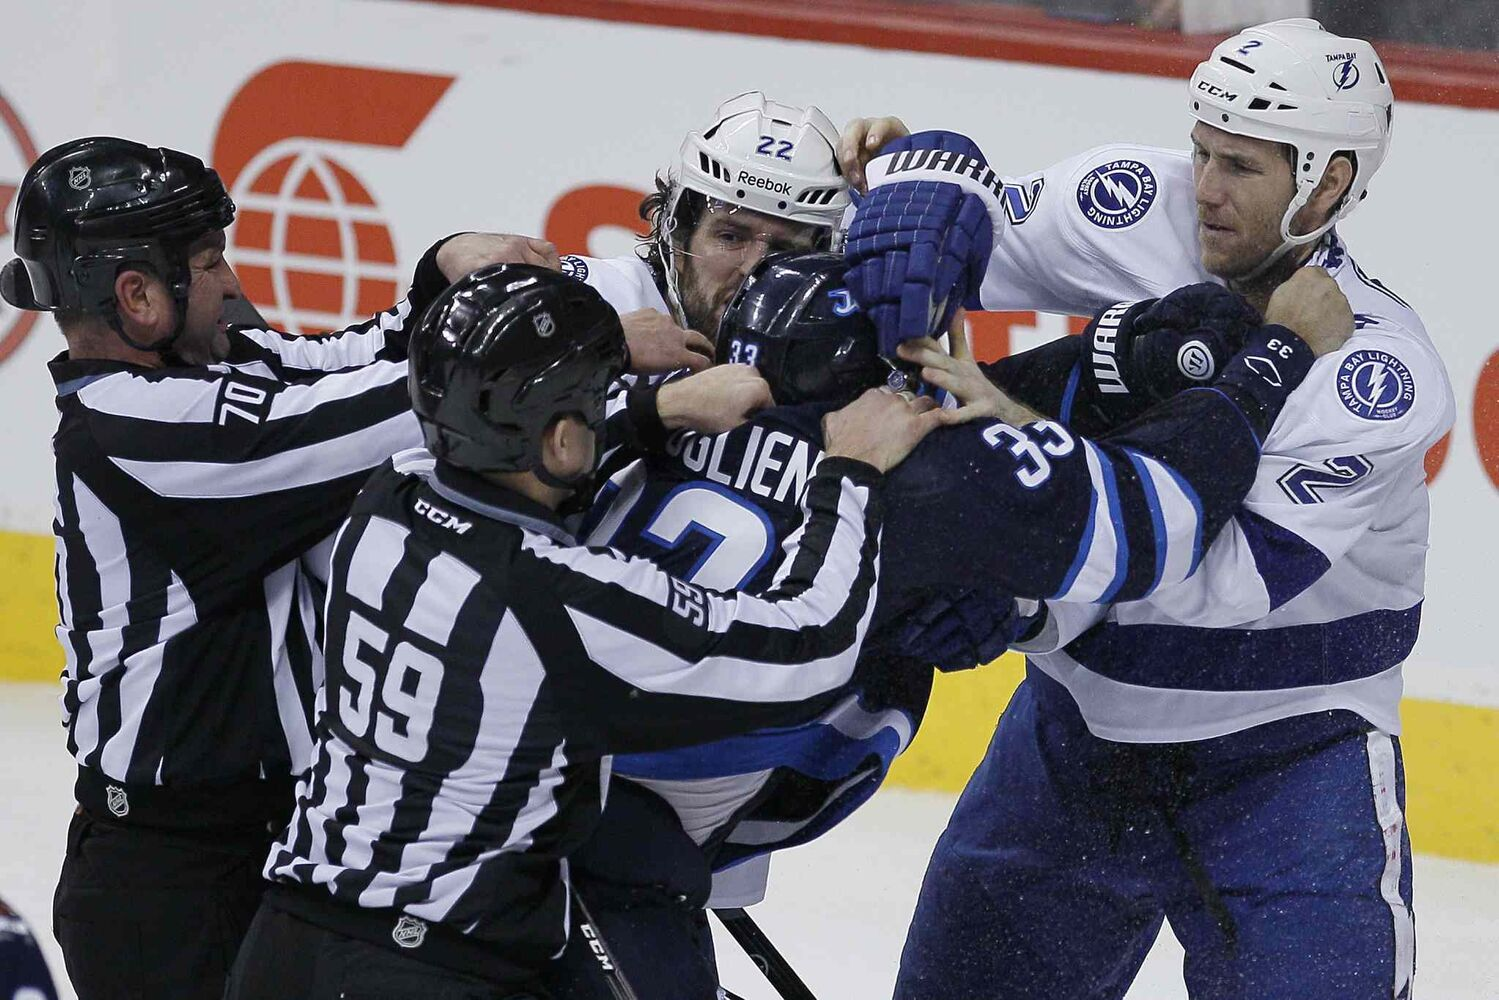 Linesmen hold Winnipeg Jets' Dustin Byfuglien (33) back from Tampa Bay Lightning's Jean-Philippe Cole (22) and Eric Brewer (2) during the third period. (John Woods / WINNIPEG FREE PRESS)